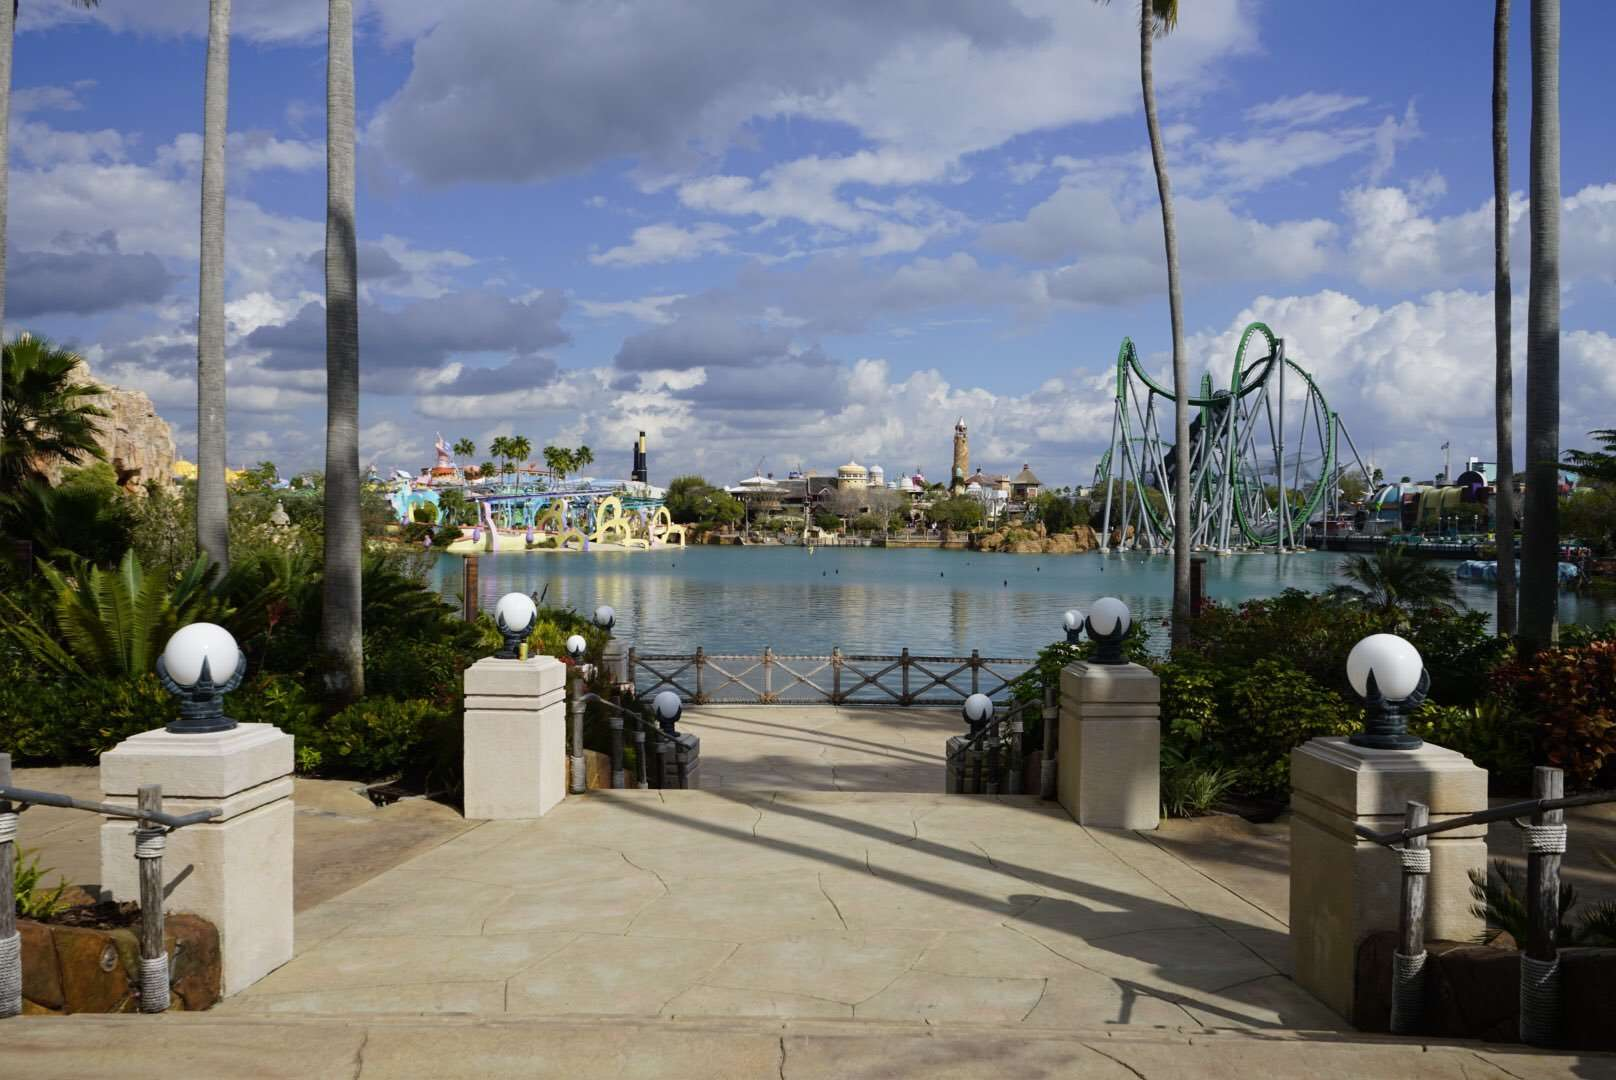 3 hidden areas at Islands of Adventure you may not know about